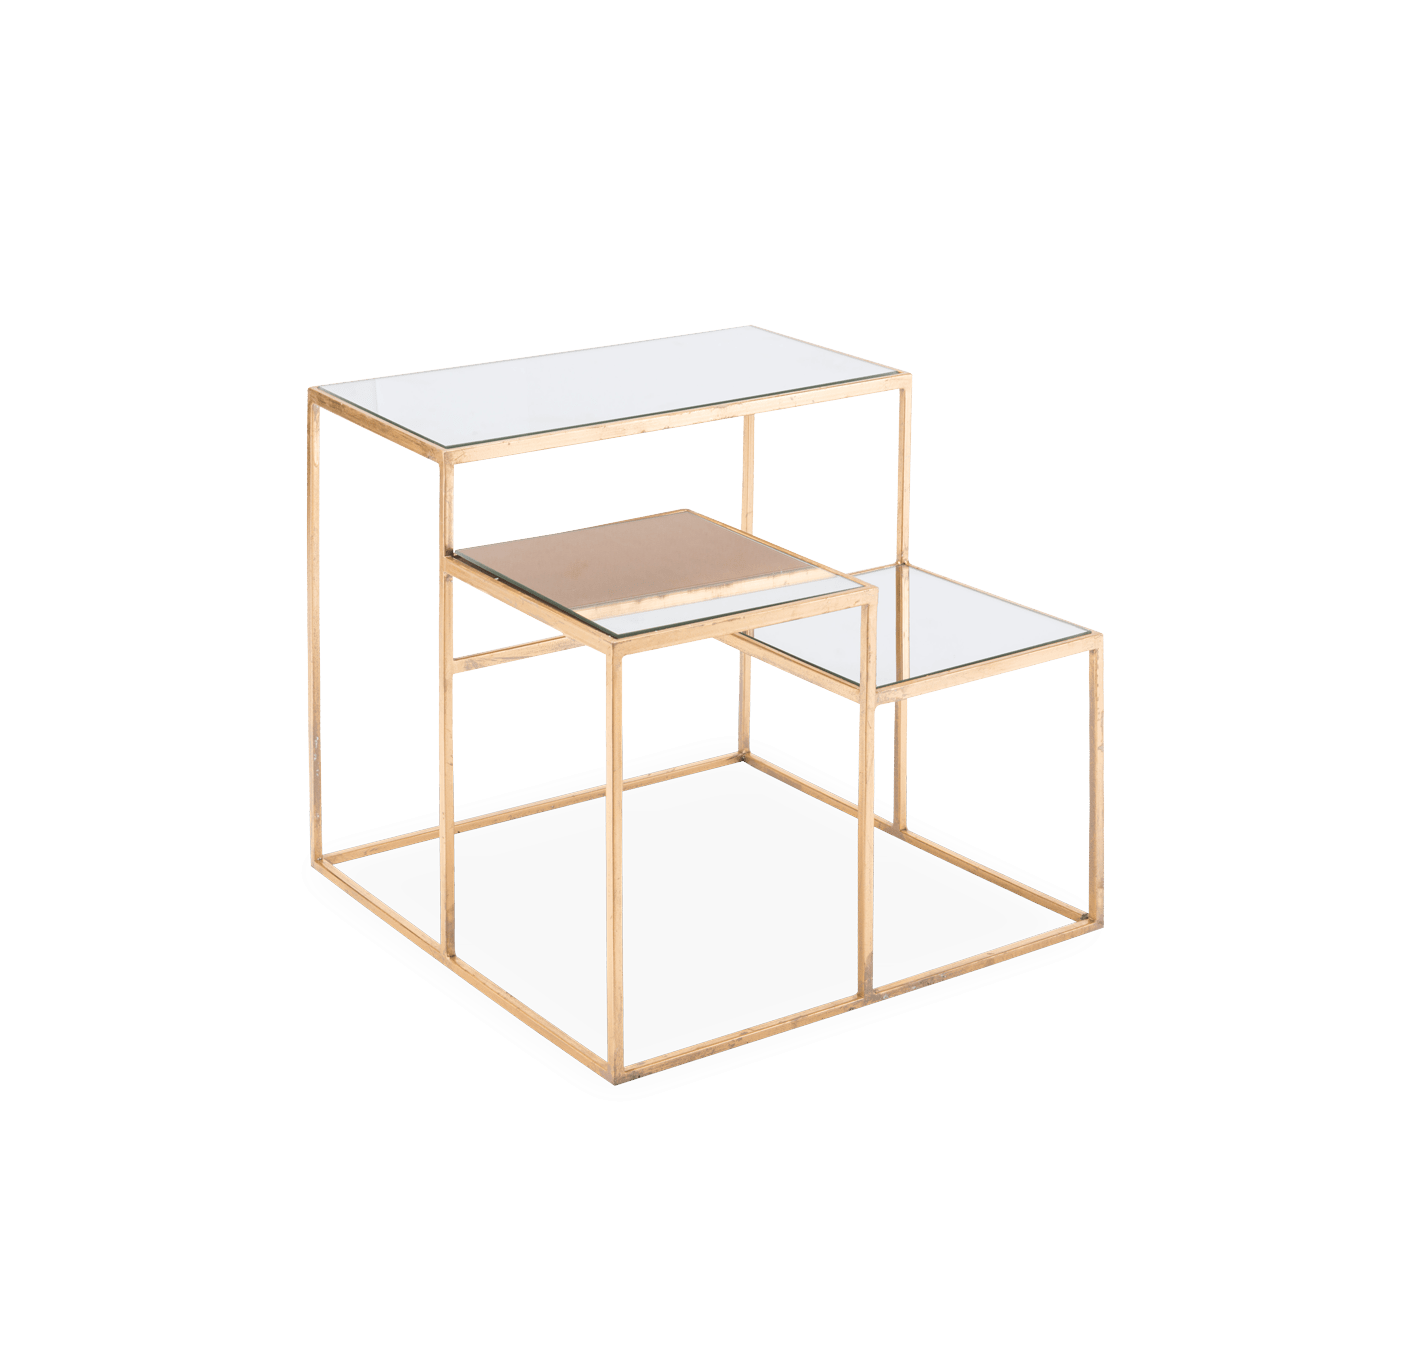 featured_product_Labels End Table_wide.png